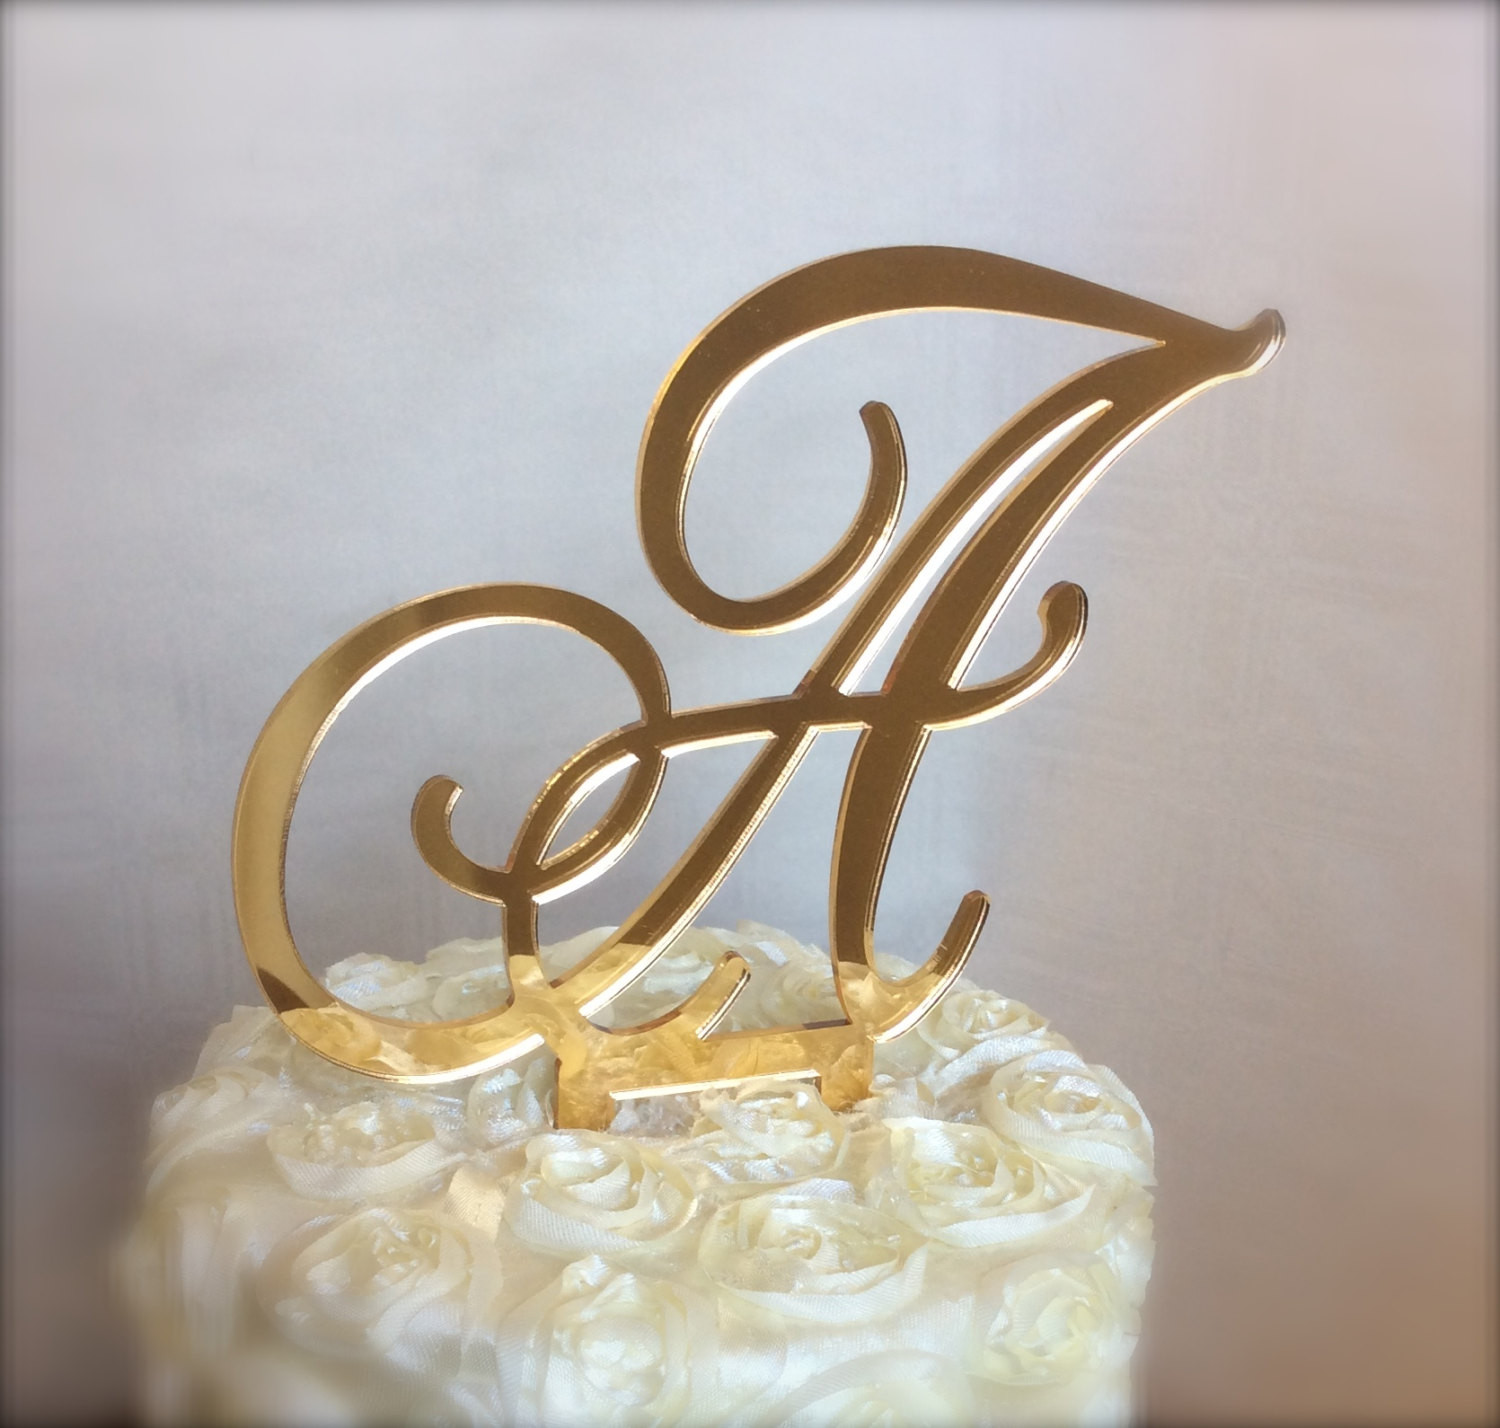 Gold Initial Cake Toppers For Wedding Cakes  gold mirror custom monogram cake topper for weddings